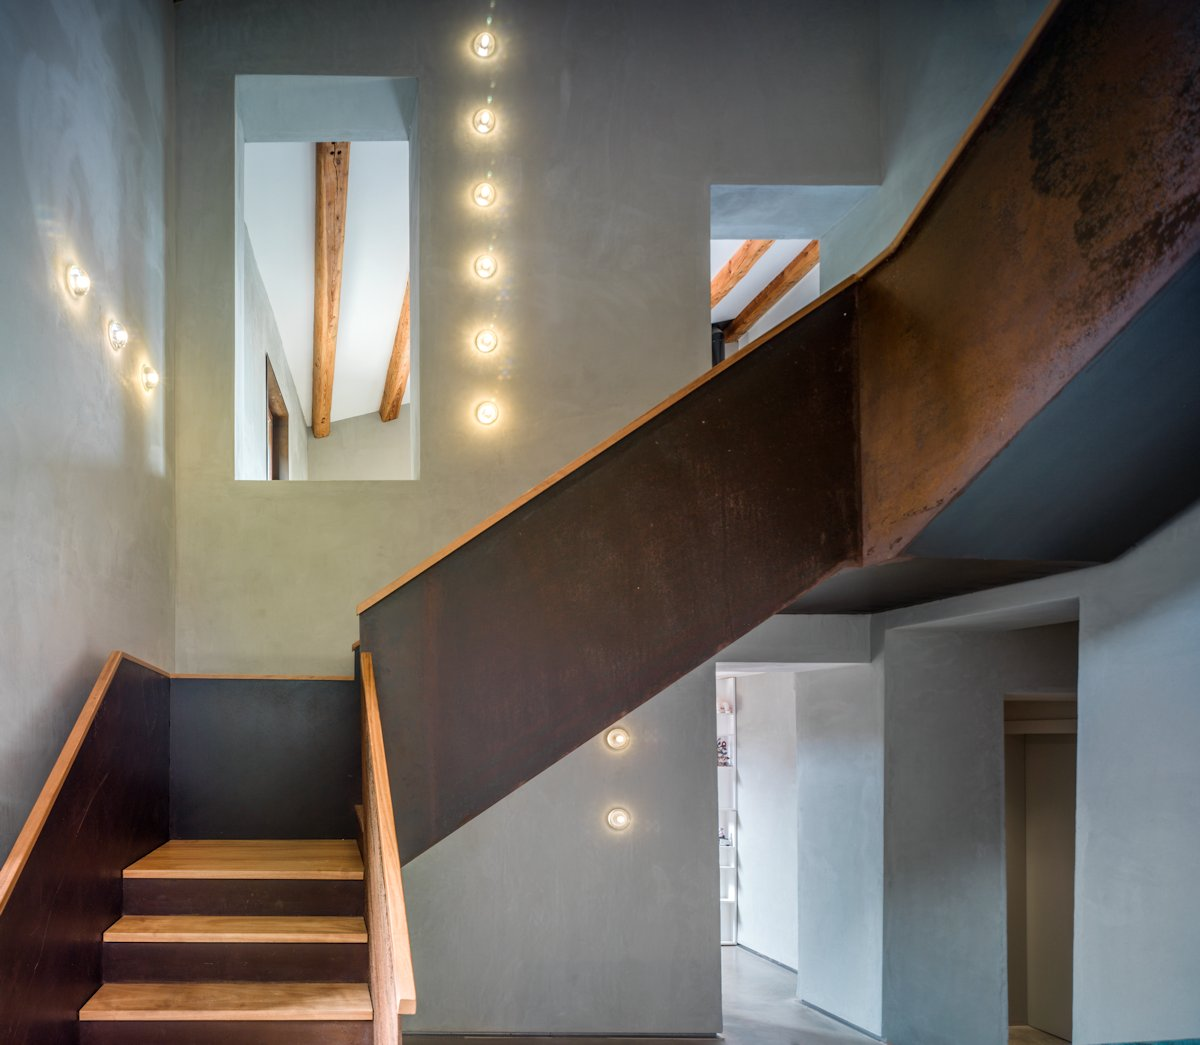 Wood & Metal Stairs, Lighting, Catalan Farmhouse, Girona, Spain